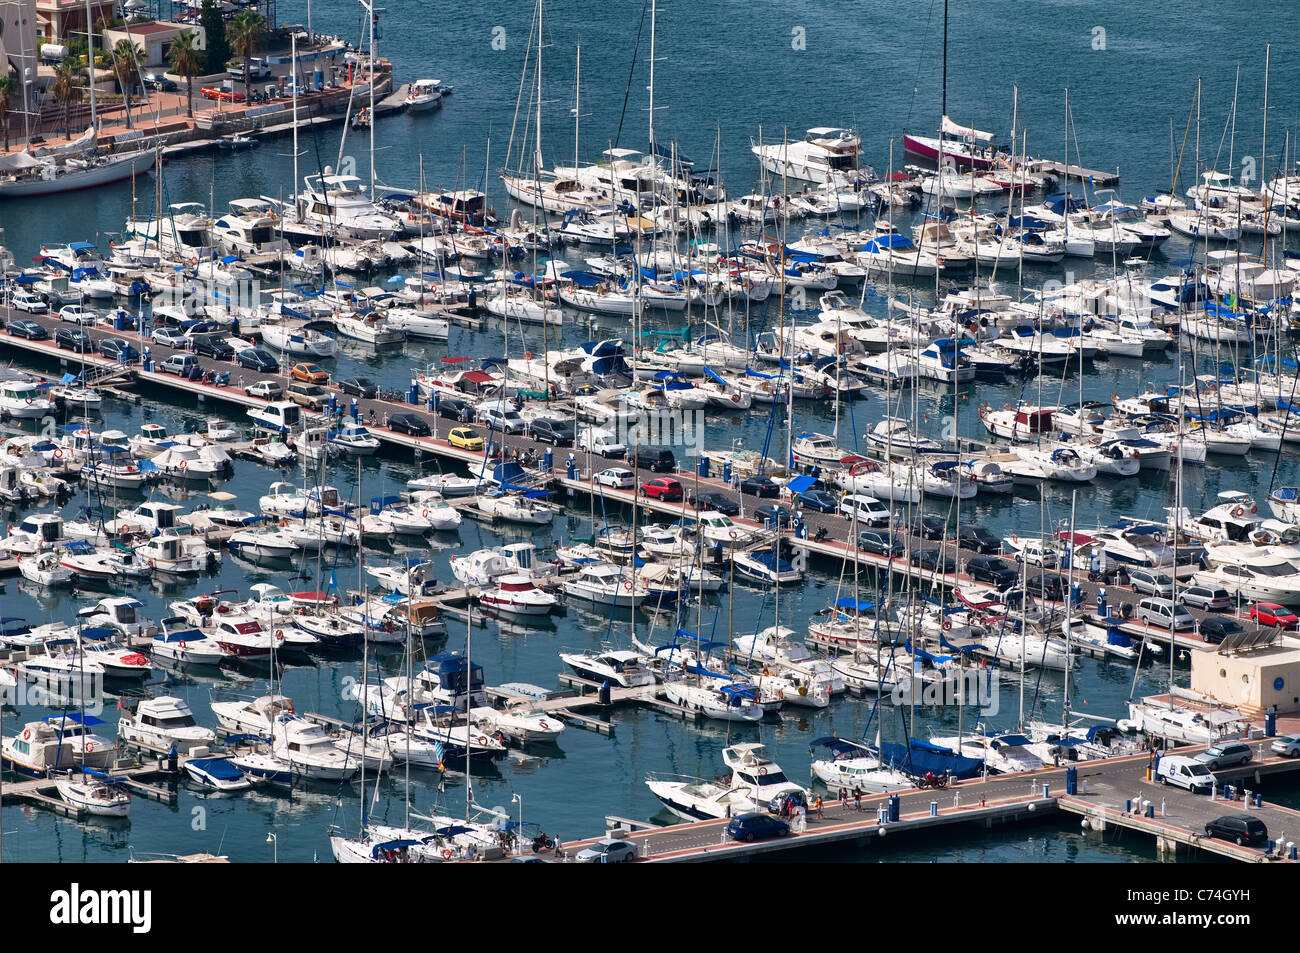 On the Mediterranean Sea The town of Alicante, Spain, Europe - On the Mediterranean Sea. Showing the towns Marina - Stock Image